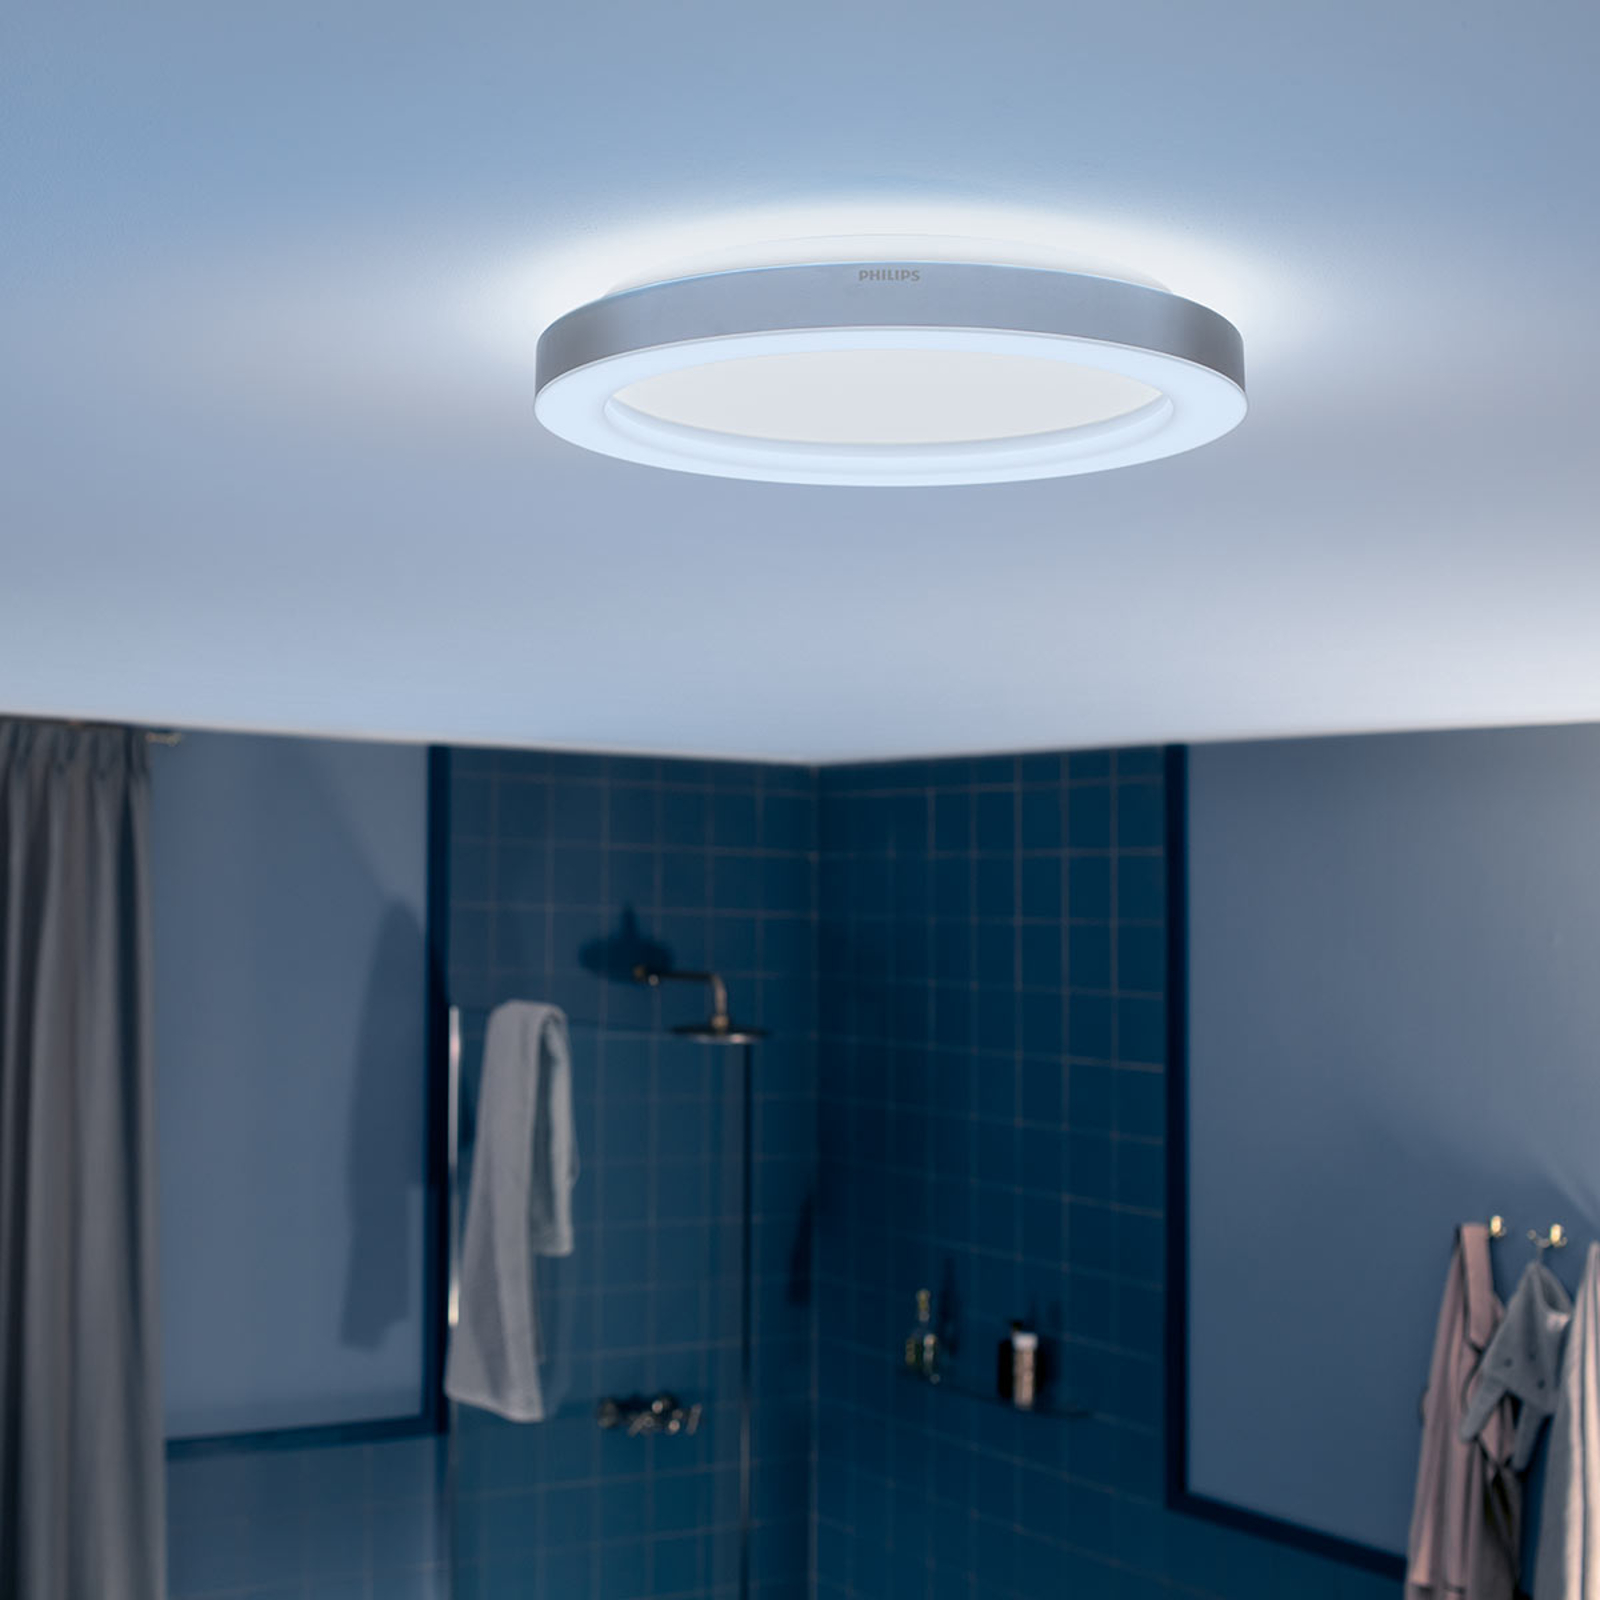 Philips Hue White Ambiance Adore Bad-Deckenlampe